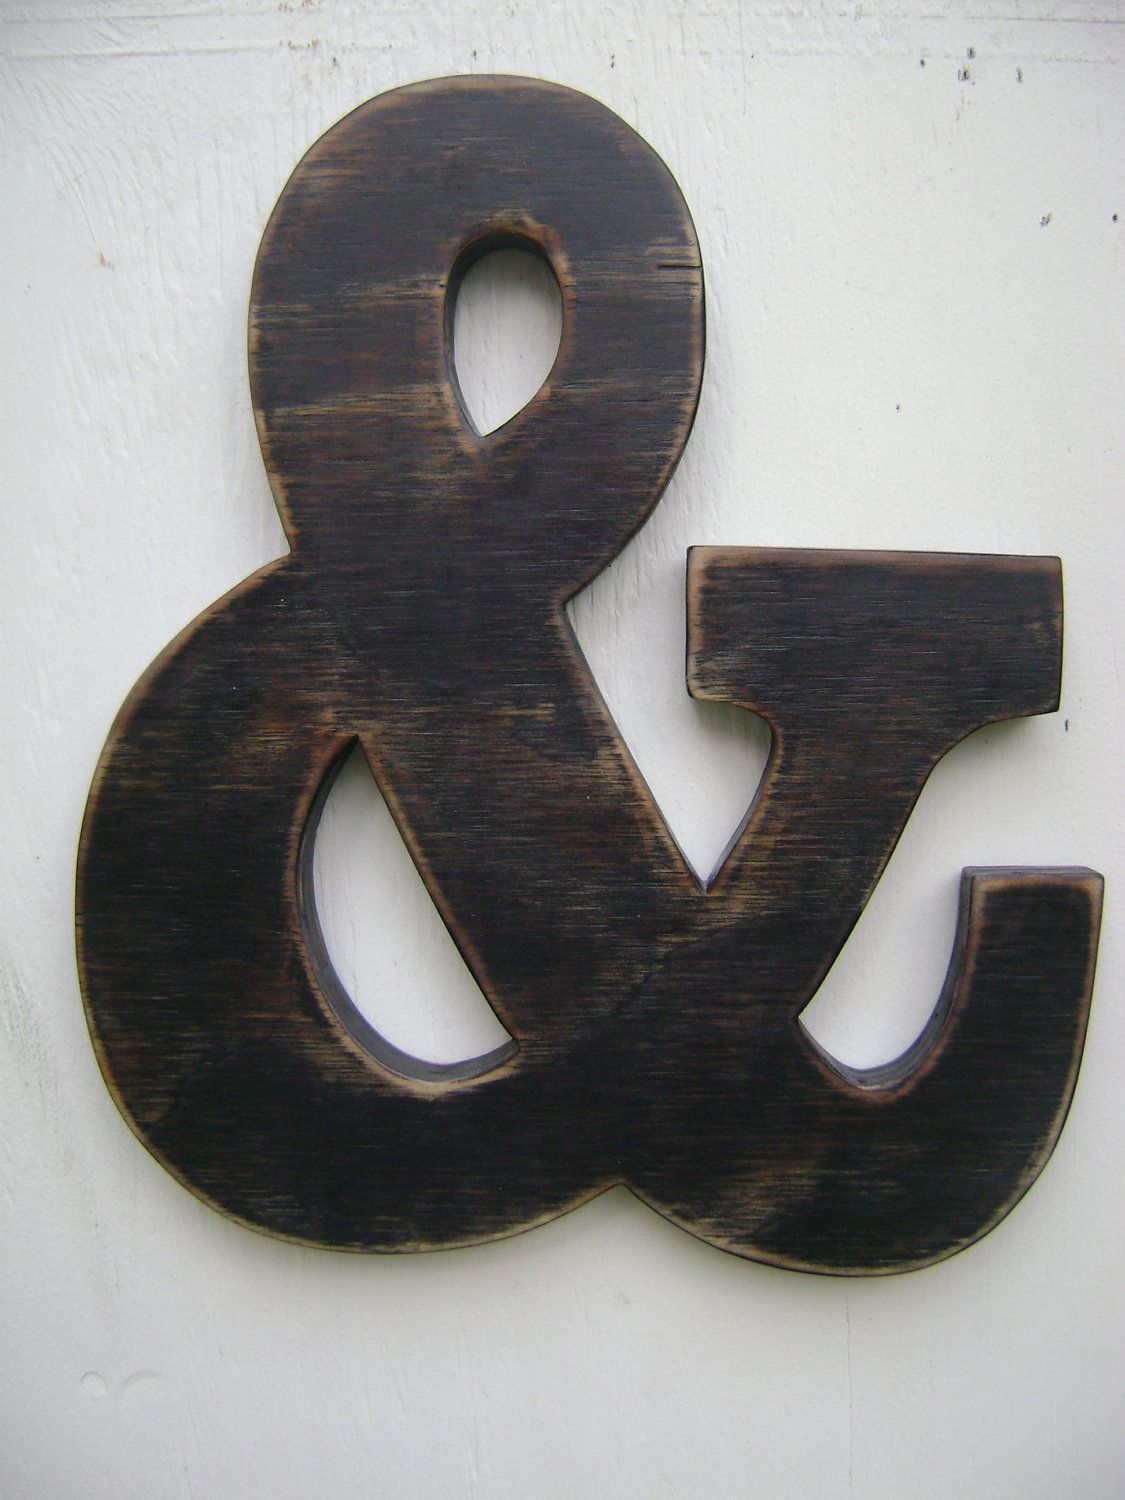 & Sign Decor Ampersand And Sign Rustic Wall Hanging Wooden Letters Shabby Chic